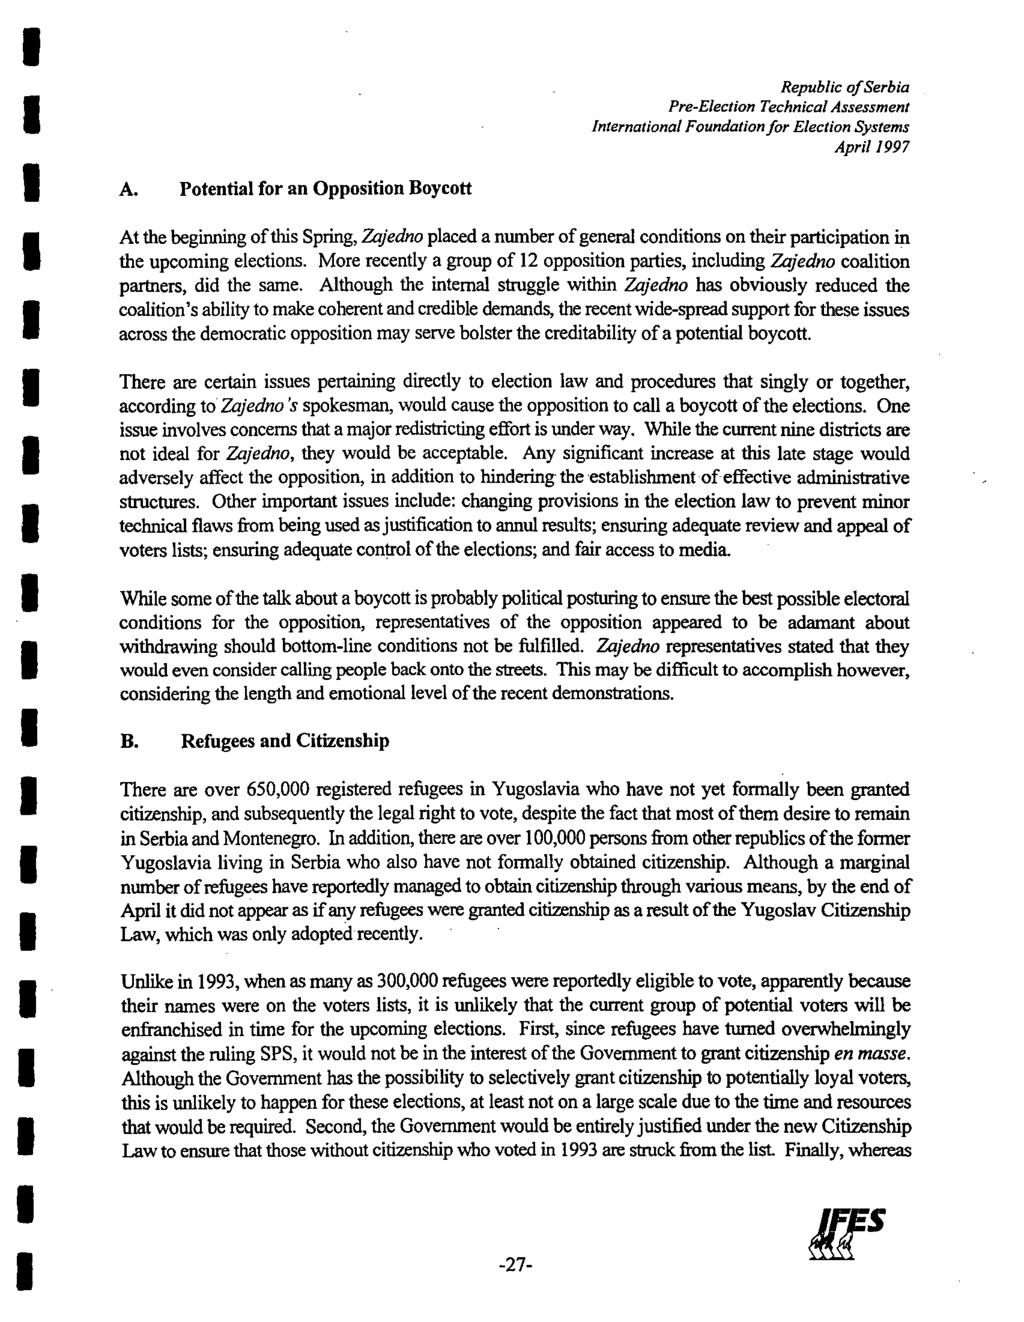 A. Potential for an Opposition Boycott Republic of Serbia Pre-Election Technical Assessment nternational Foundationfor Election Systems April 1997 At the beginning of this Spring, Zajedno placed a